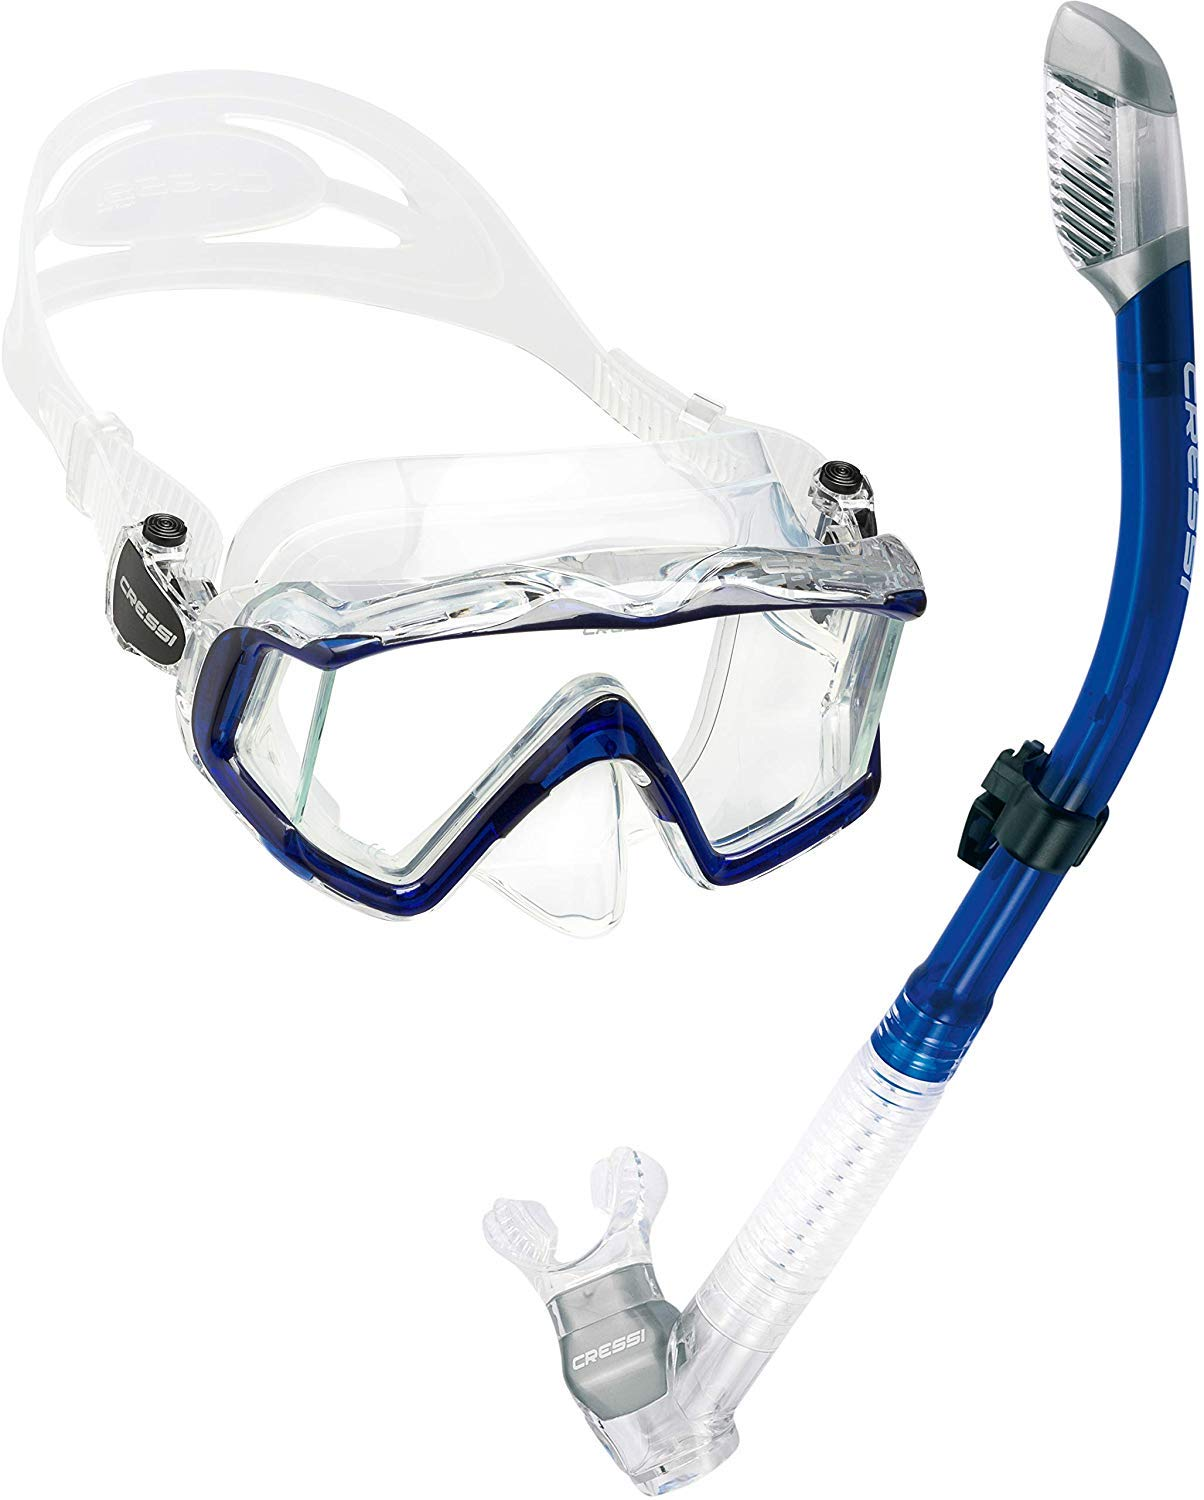 Cressi Panoramic Wide View Mask Dry Snorkel Set, Blue by Cressi